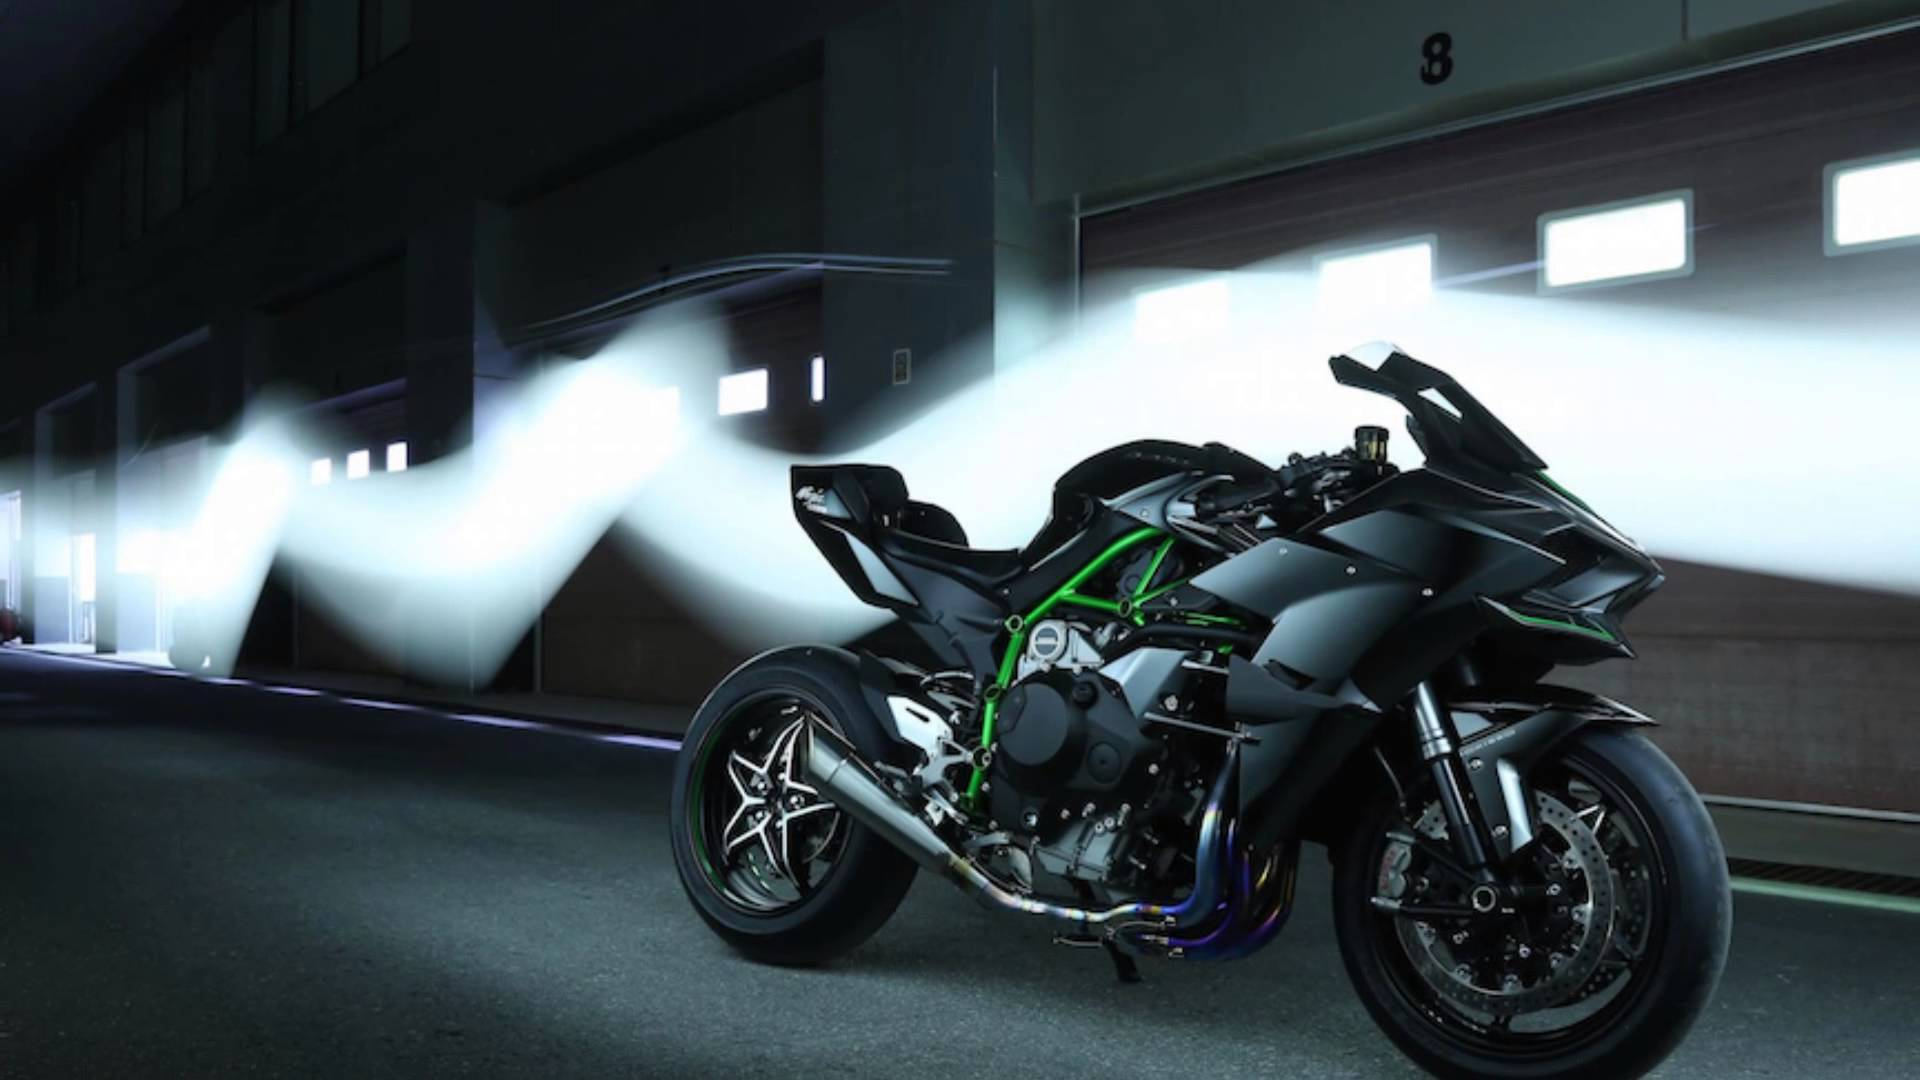 Kawasaki Ninja H2r 4k Wallpapers Wallpaper Cave